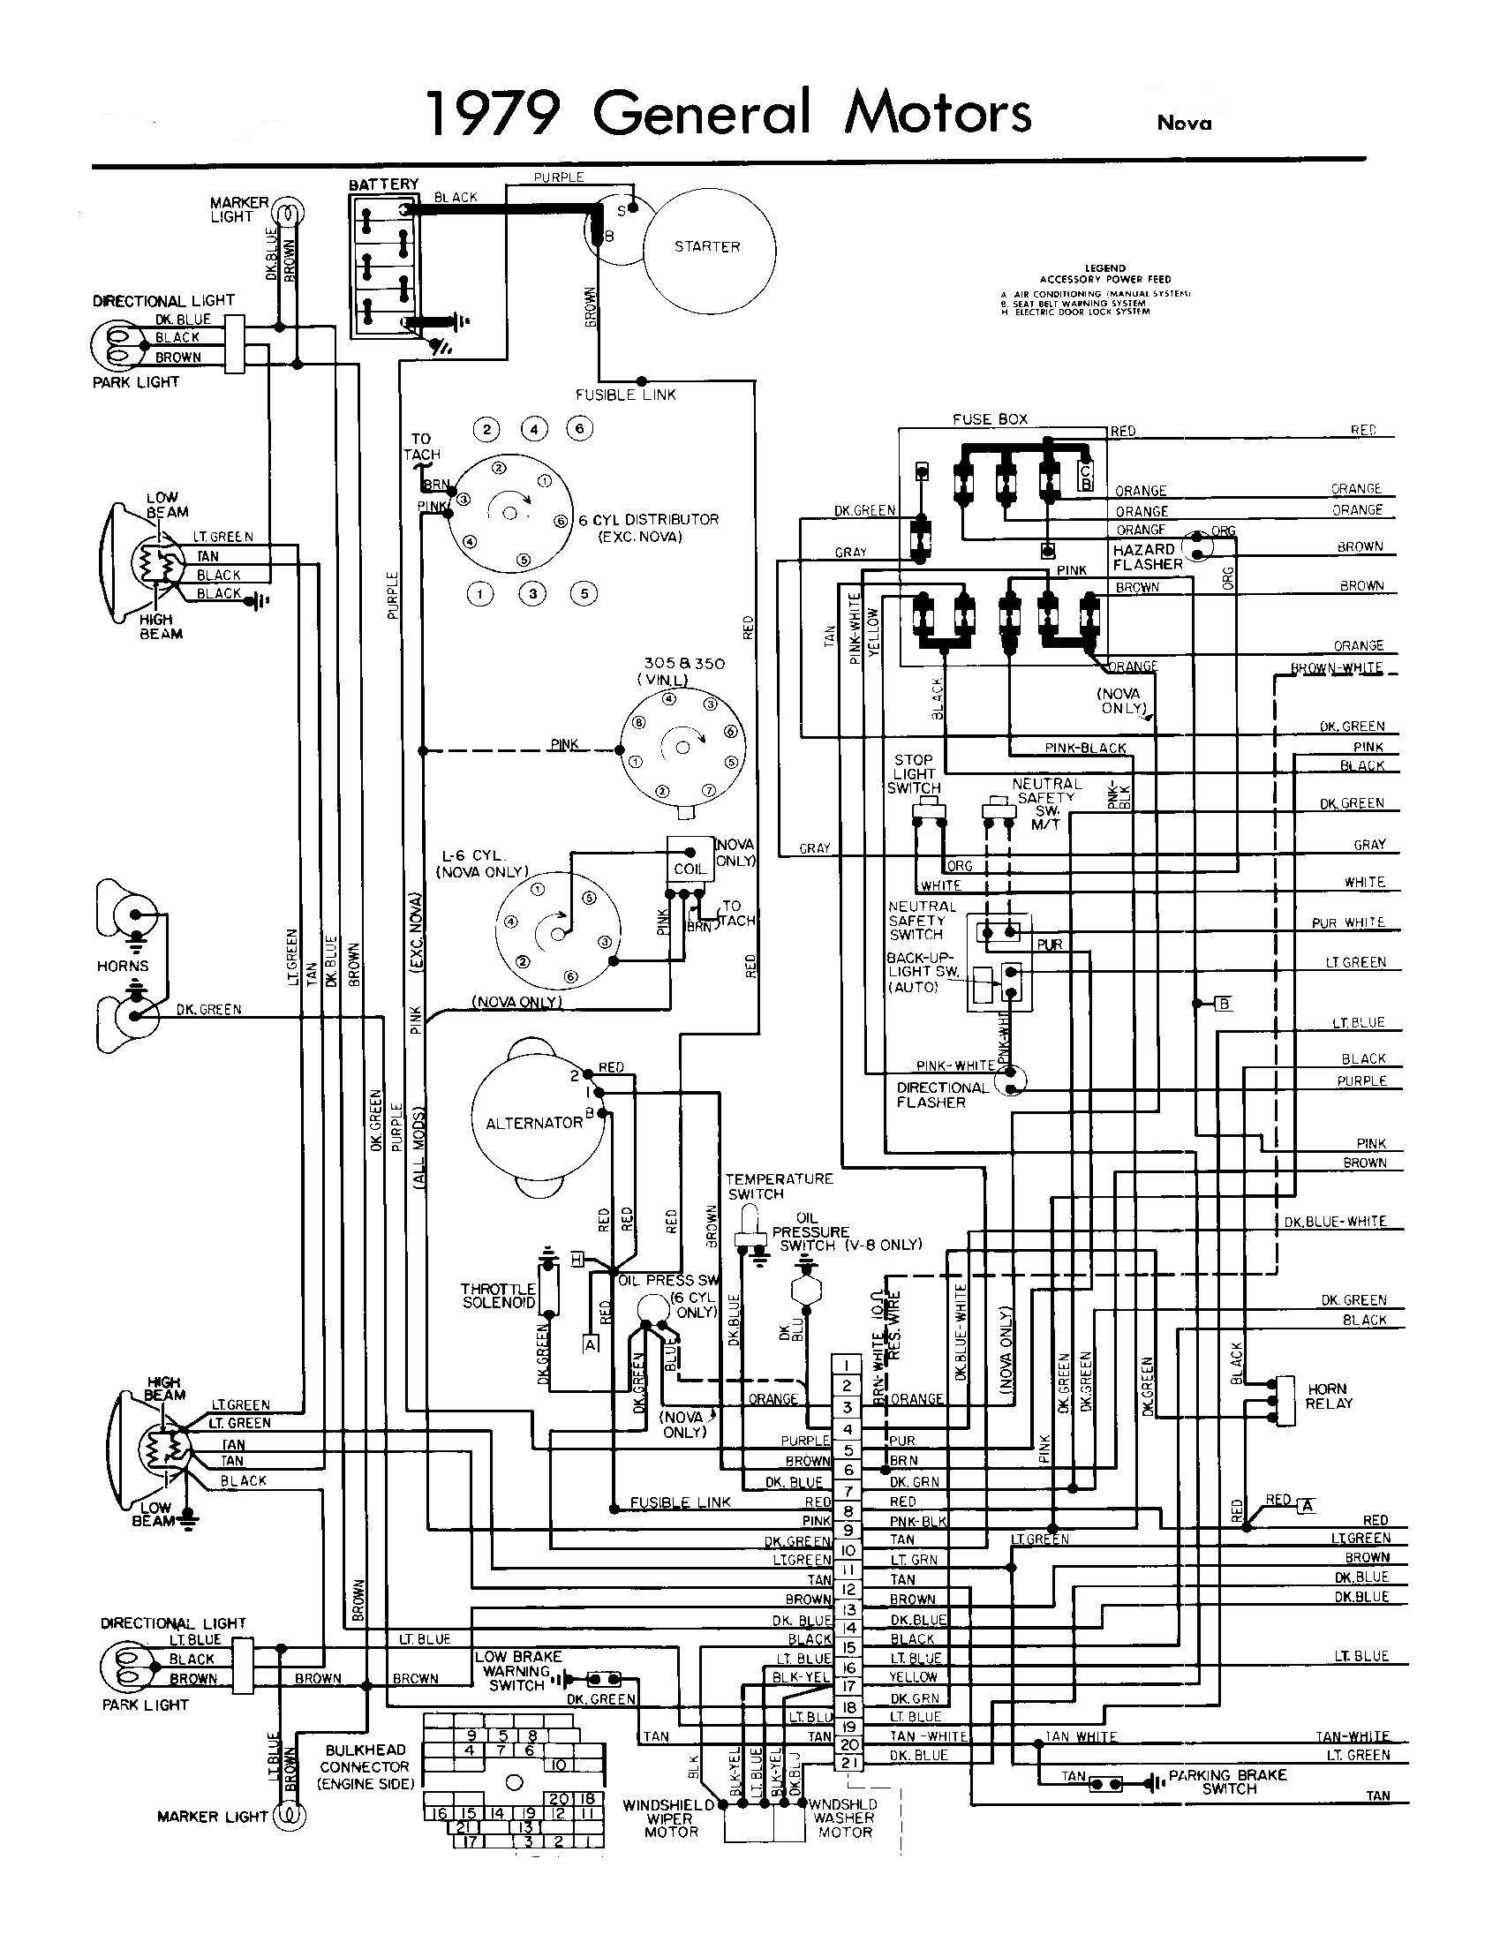 1979 Chevy Truck Radio Wiring Diagram 1979 Gmc Truck Wiring Diagram Wiring Diagram Paper Of 1979 Chevy Truck Radio Wiring Diagram